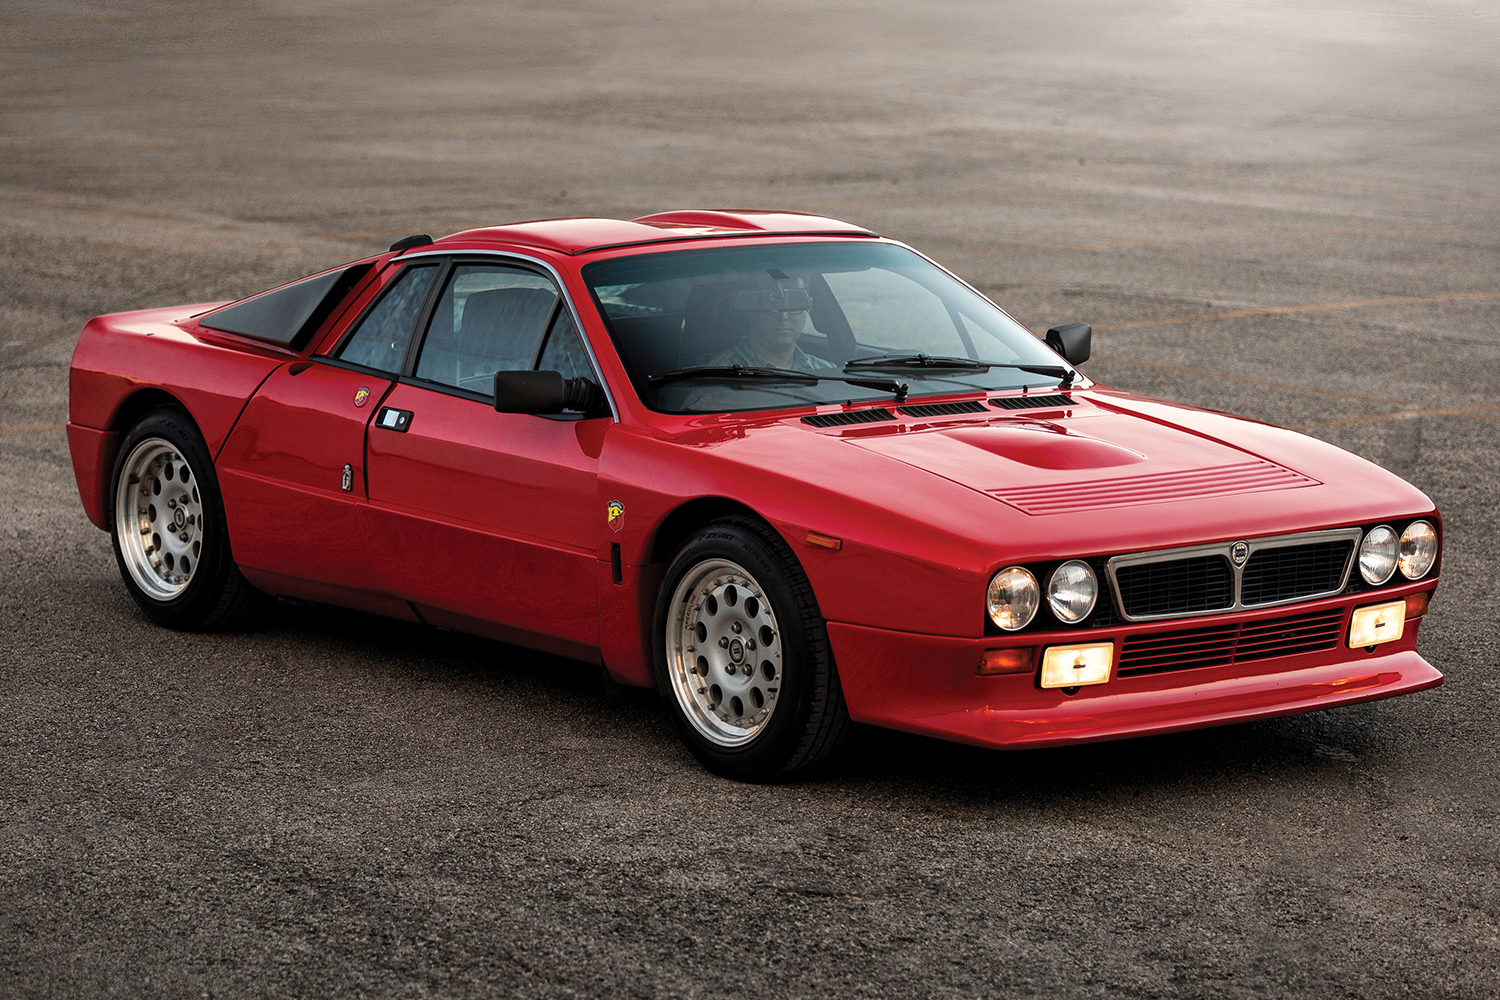 1984 Lancia Rally 037 Stradale RM Sotheby's